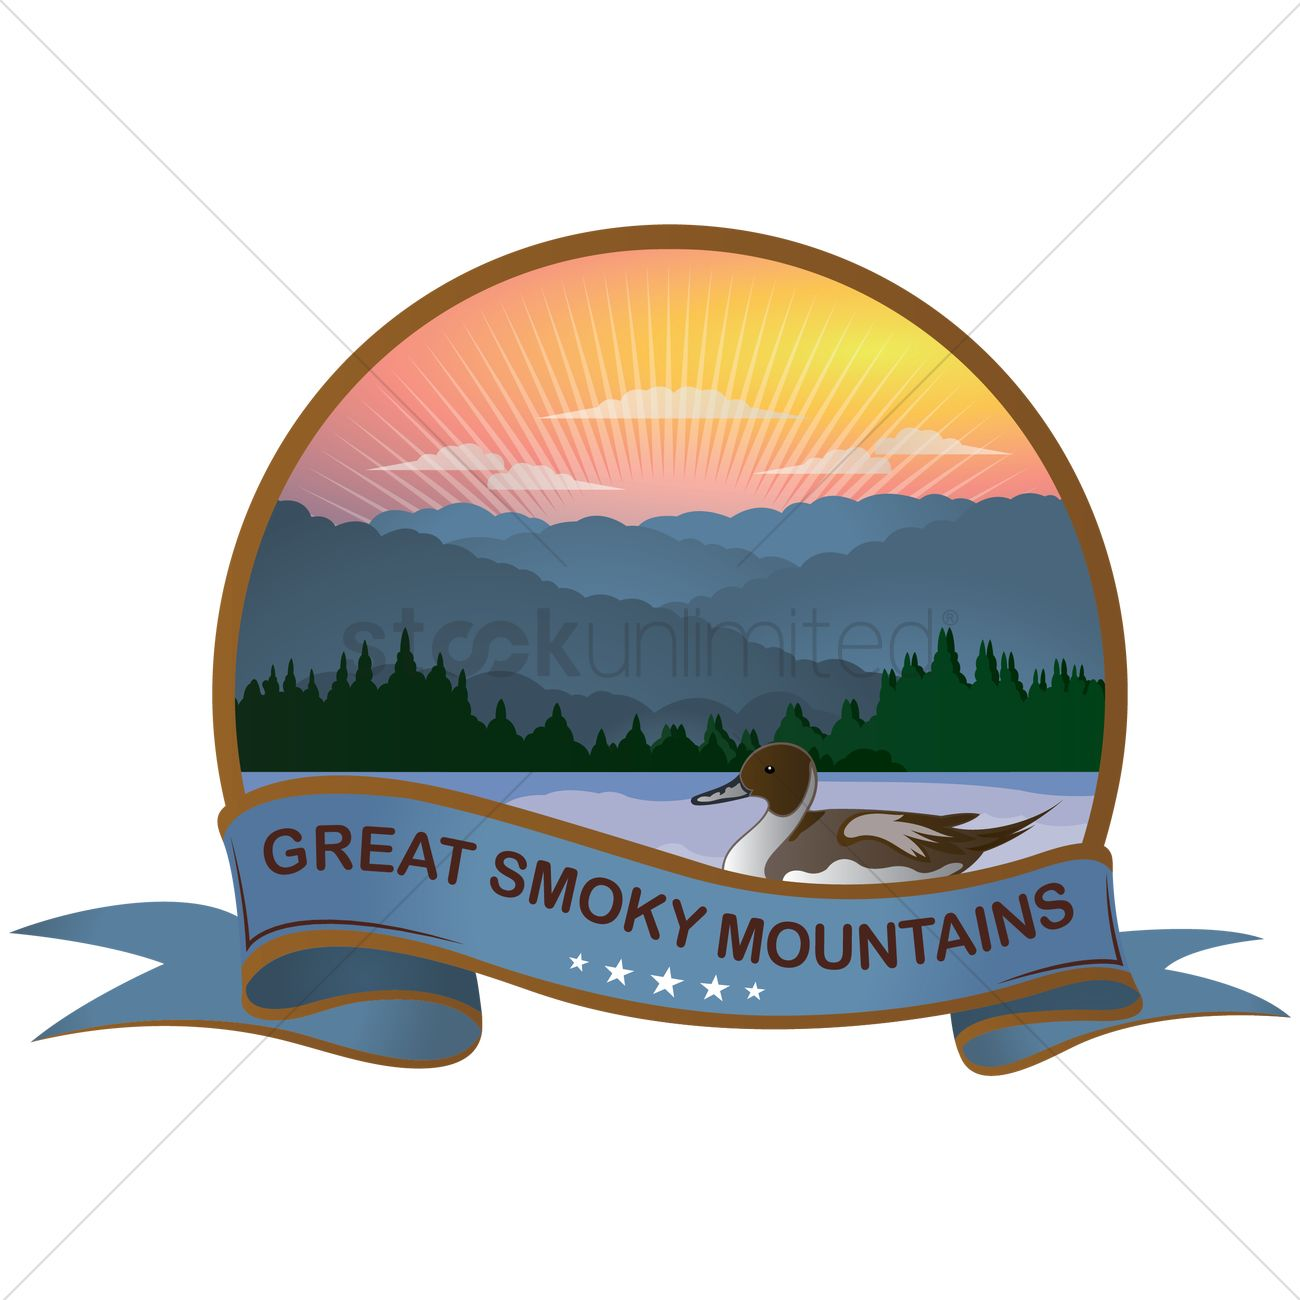 Great smoky mountains Vector Image.